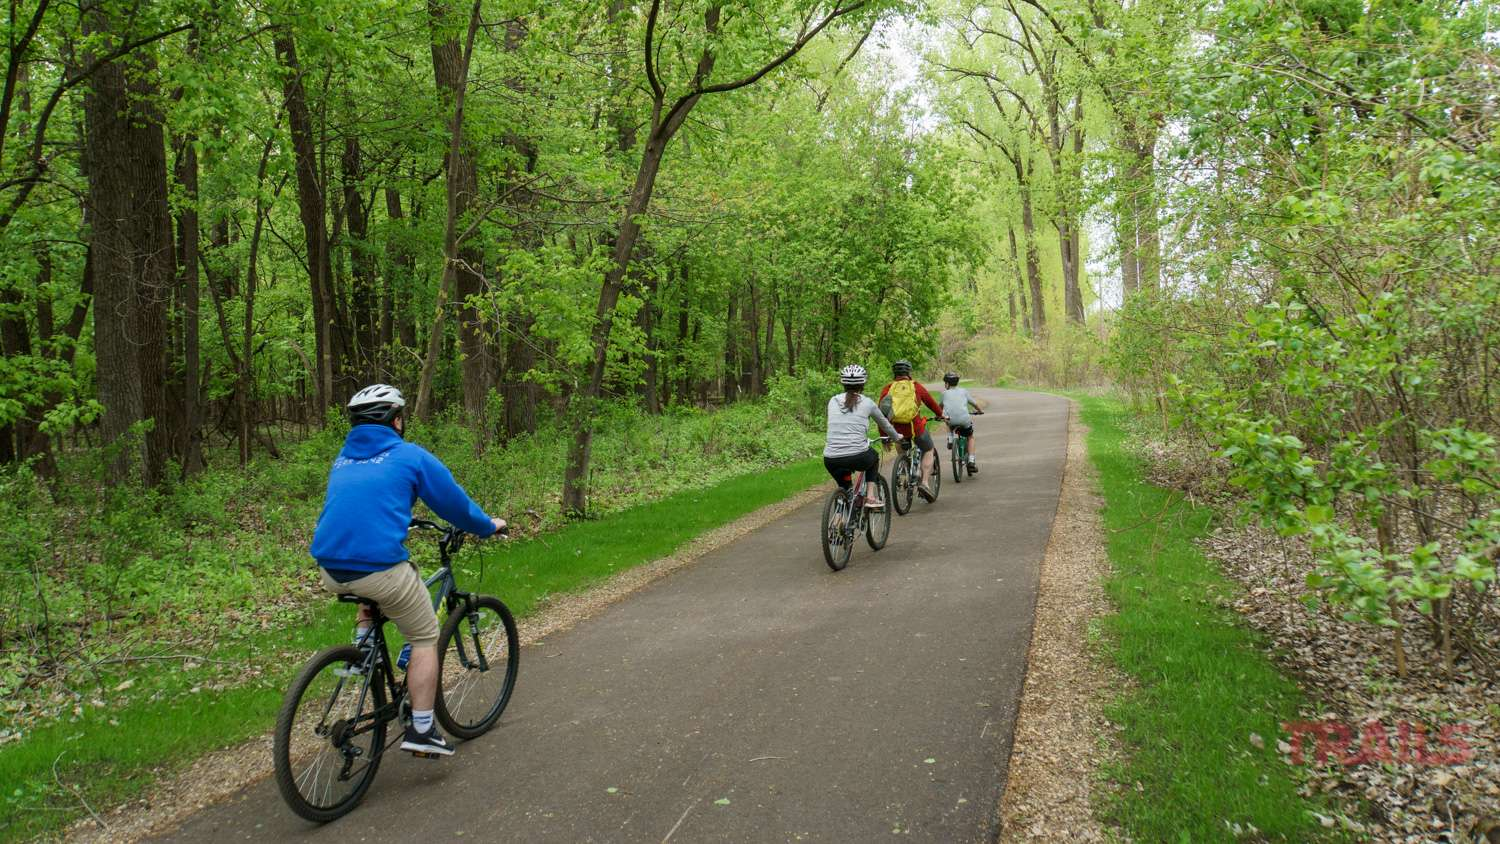 A group of four rides bicycles through a wooded area on a paved trail in the spring